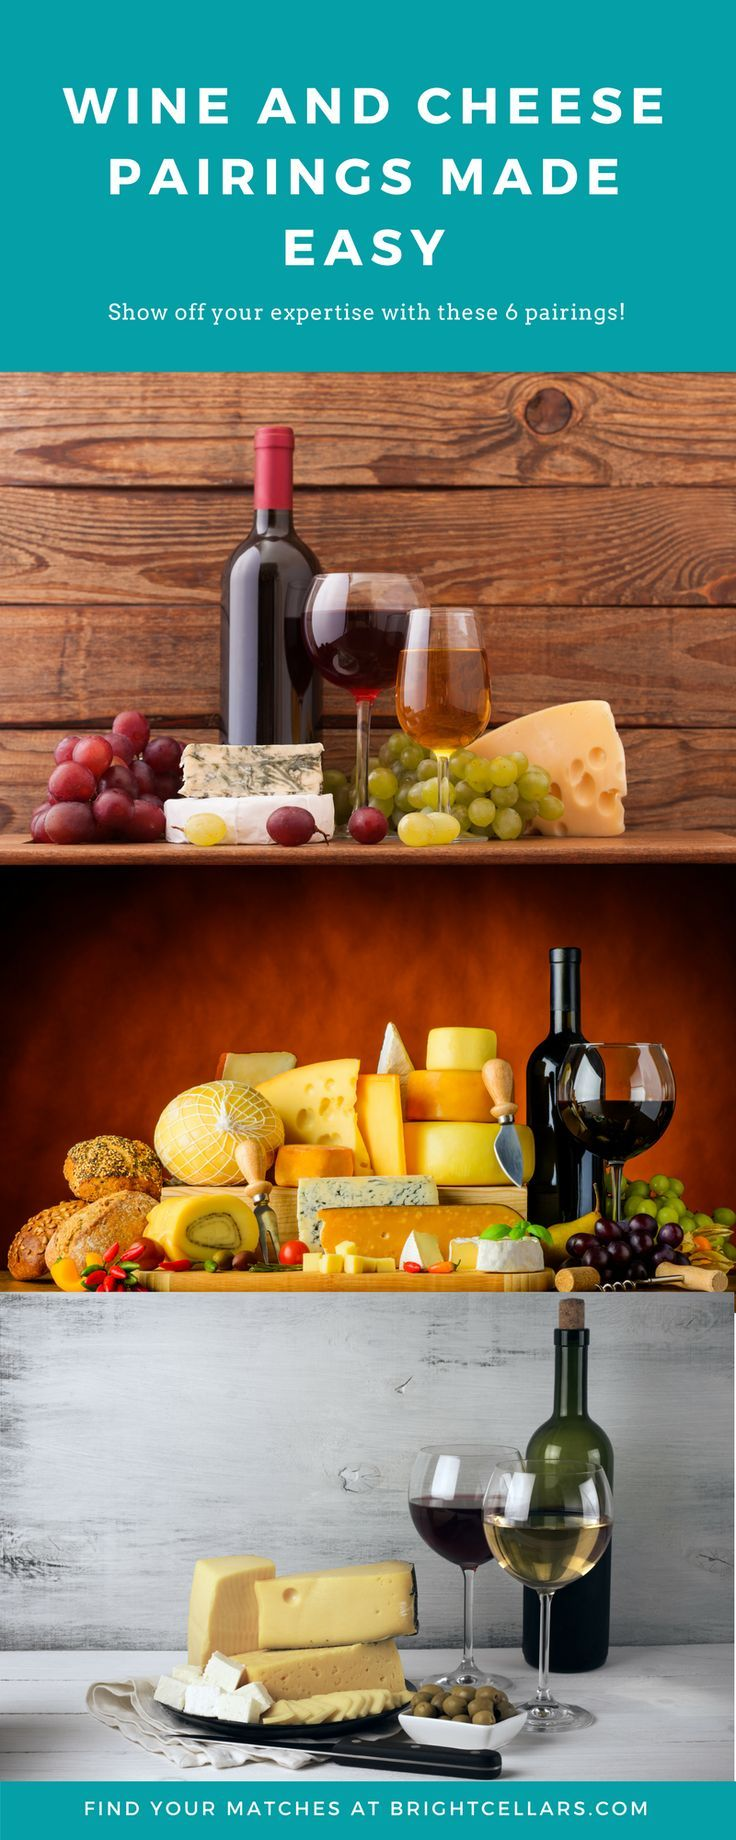 Follow these simple guidelines from Bright Cellars for a delicious and eye-catching pairing experience. #wineglasswriter